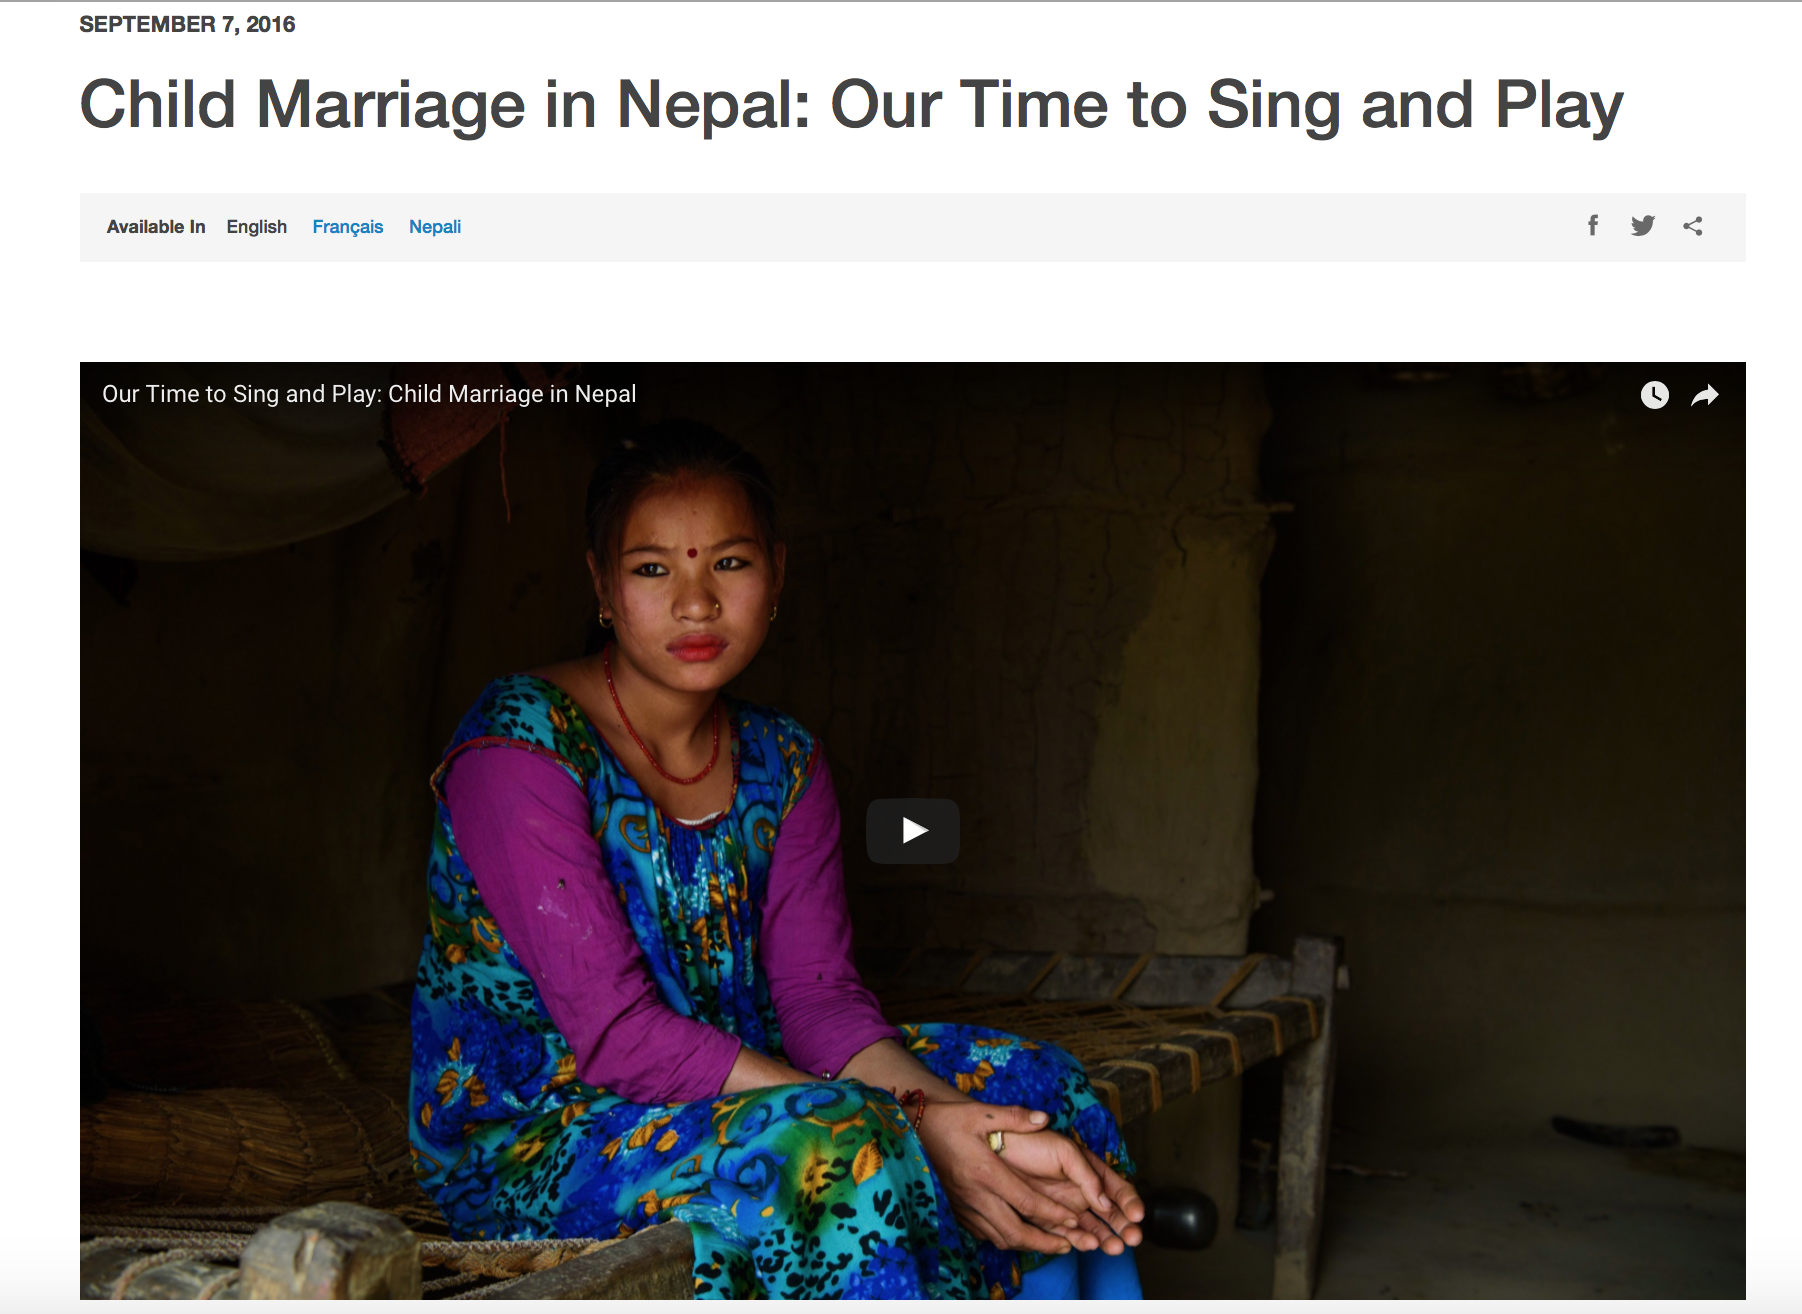 https://www.hrw.org/report/2016/09/08/our-time-sing-and-play/child-marriage-nepal